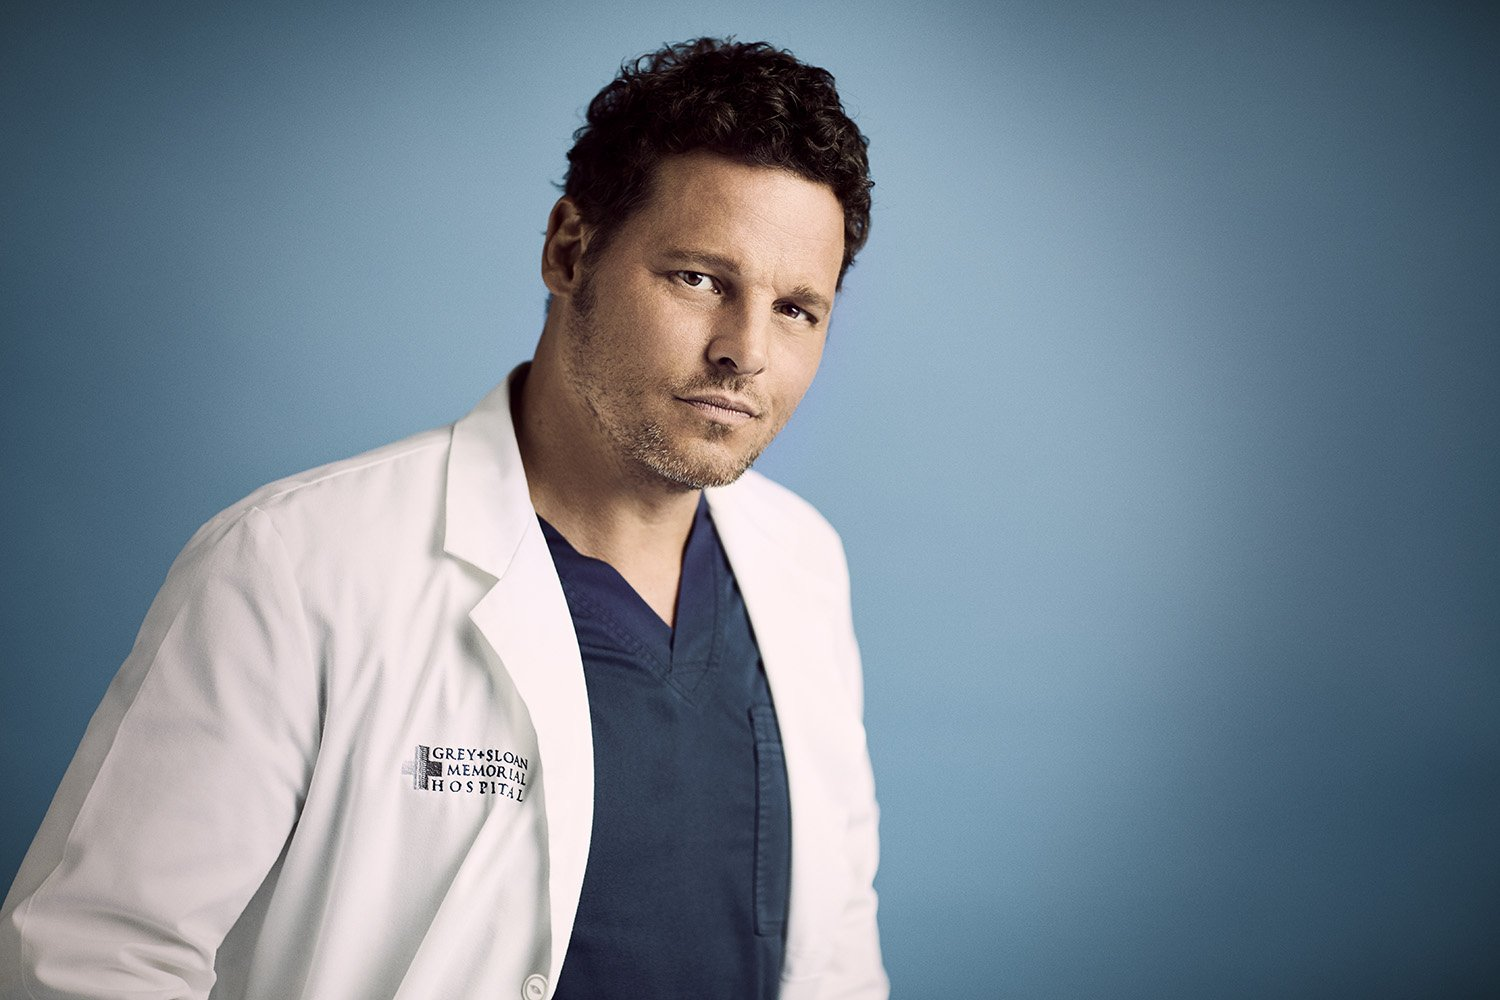 Image Credits: Getty Images | Alex Karev played by Justin Chambers is one of fan's favorites